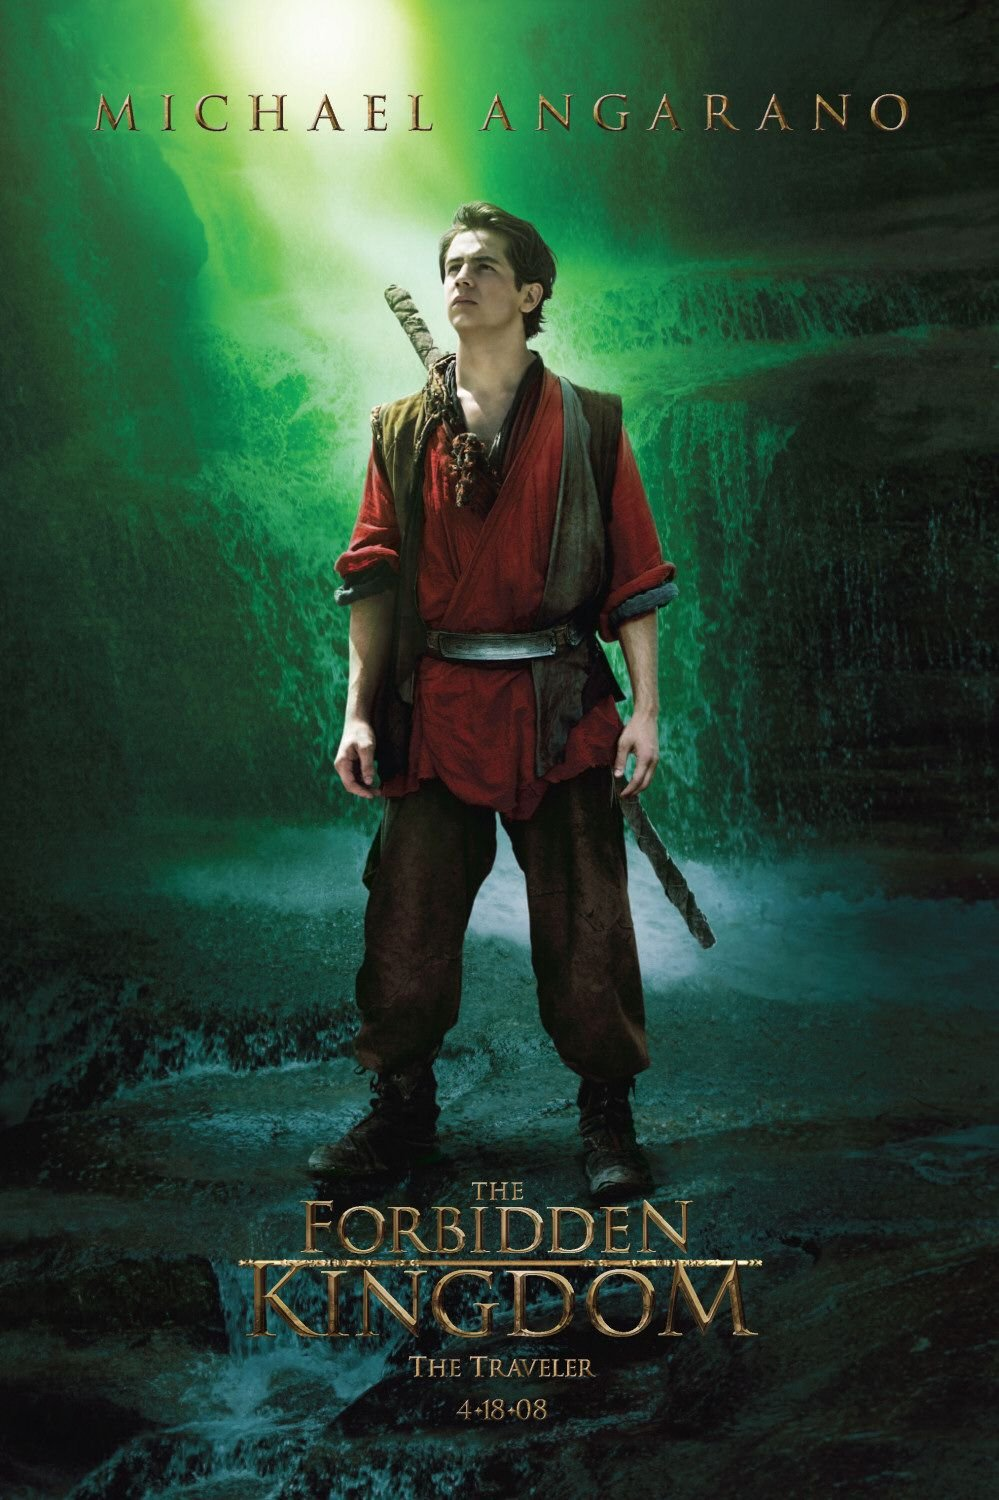 Forbidden Kingdom, The (2008) poster - FreeMoviePosters.net